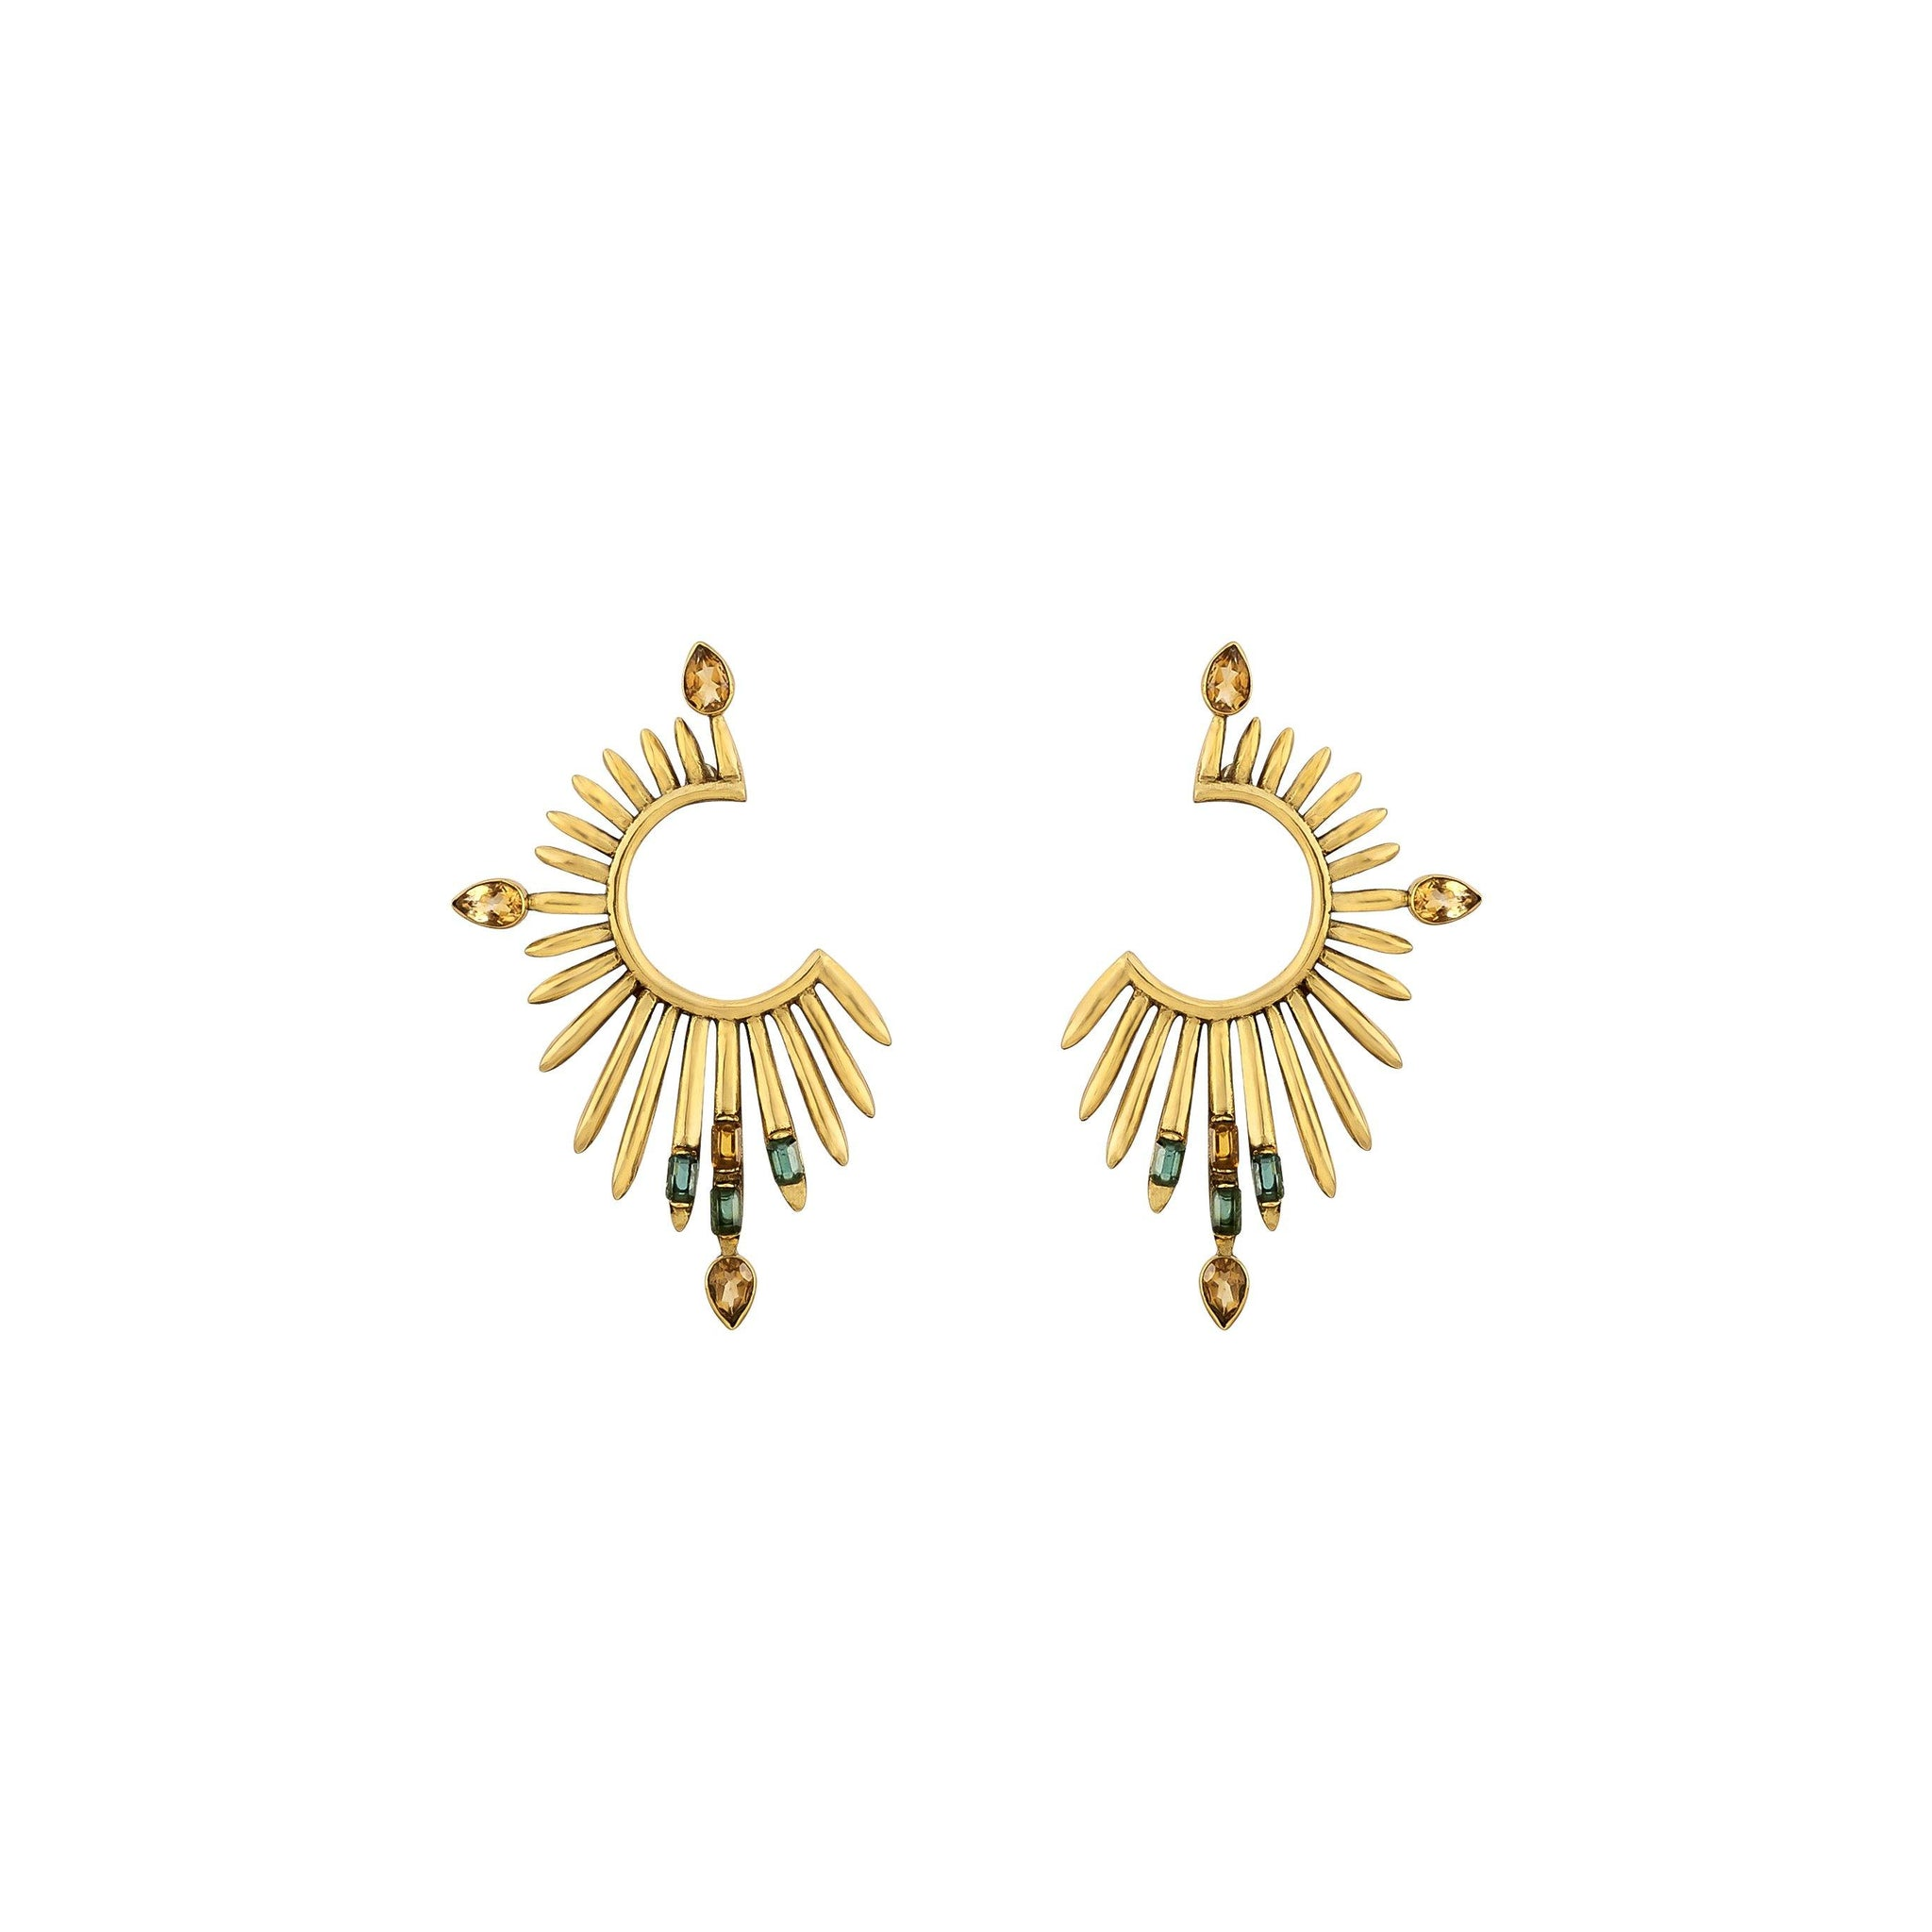 Sora Earrings - Kasha Bali